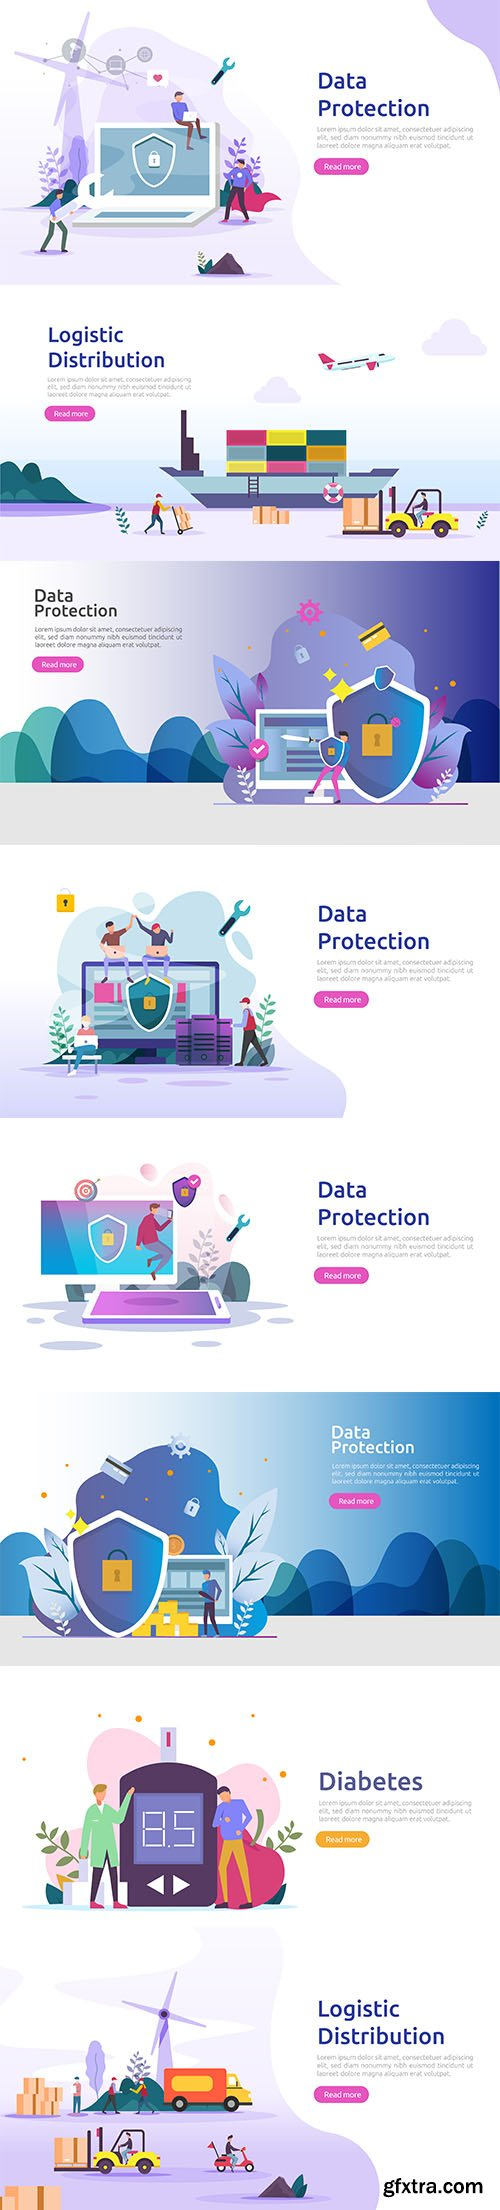 Confidentian Data Protection VPN Internet Illustration